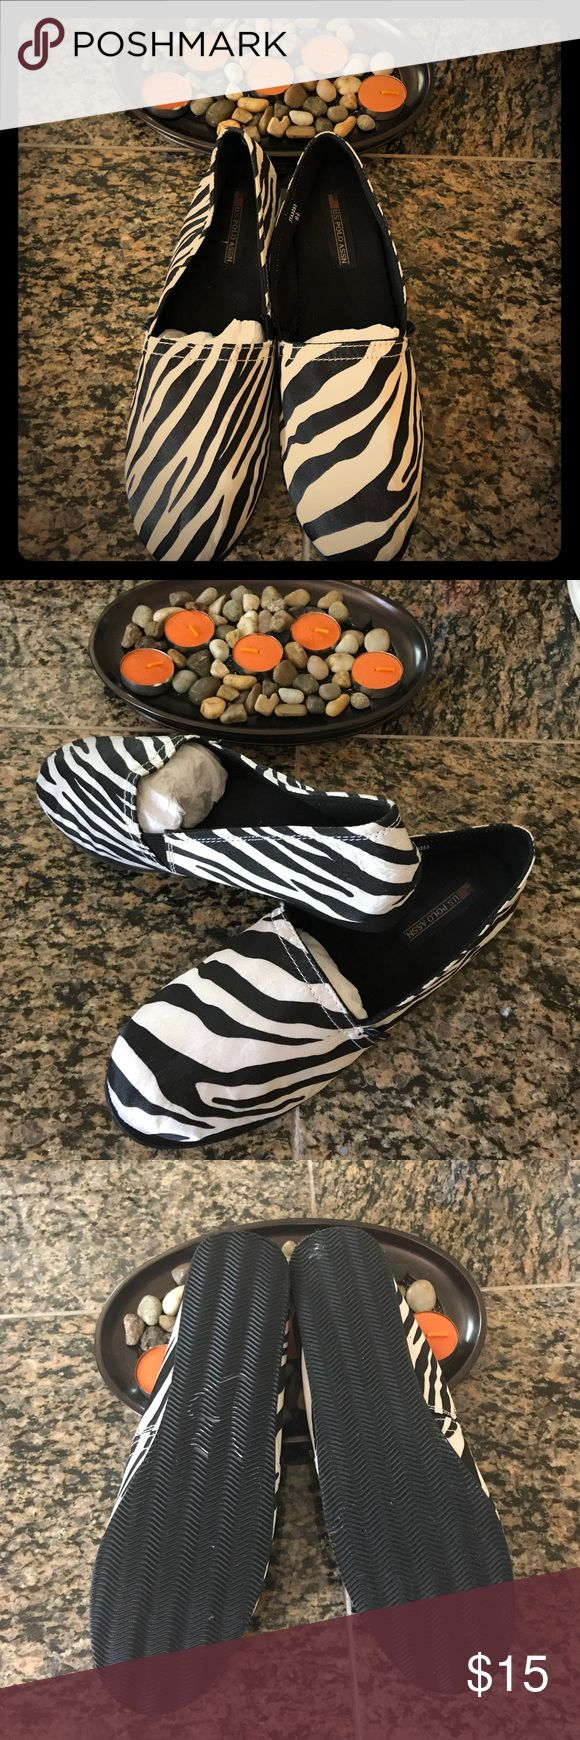 Comfortable & stylish shoes. Just found this fun and comfortable zebra shoes while cleaning one of my closets. They're brand new no tags but never been worn before. U.S. Polo Assn. Shoes Flats & Loafers